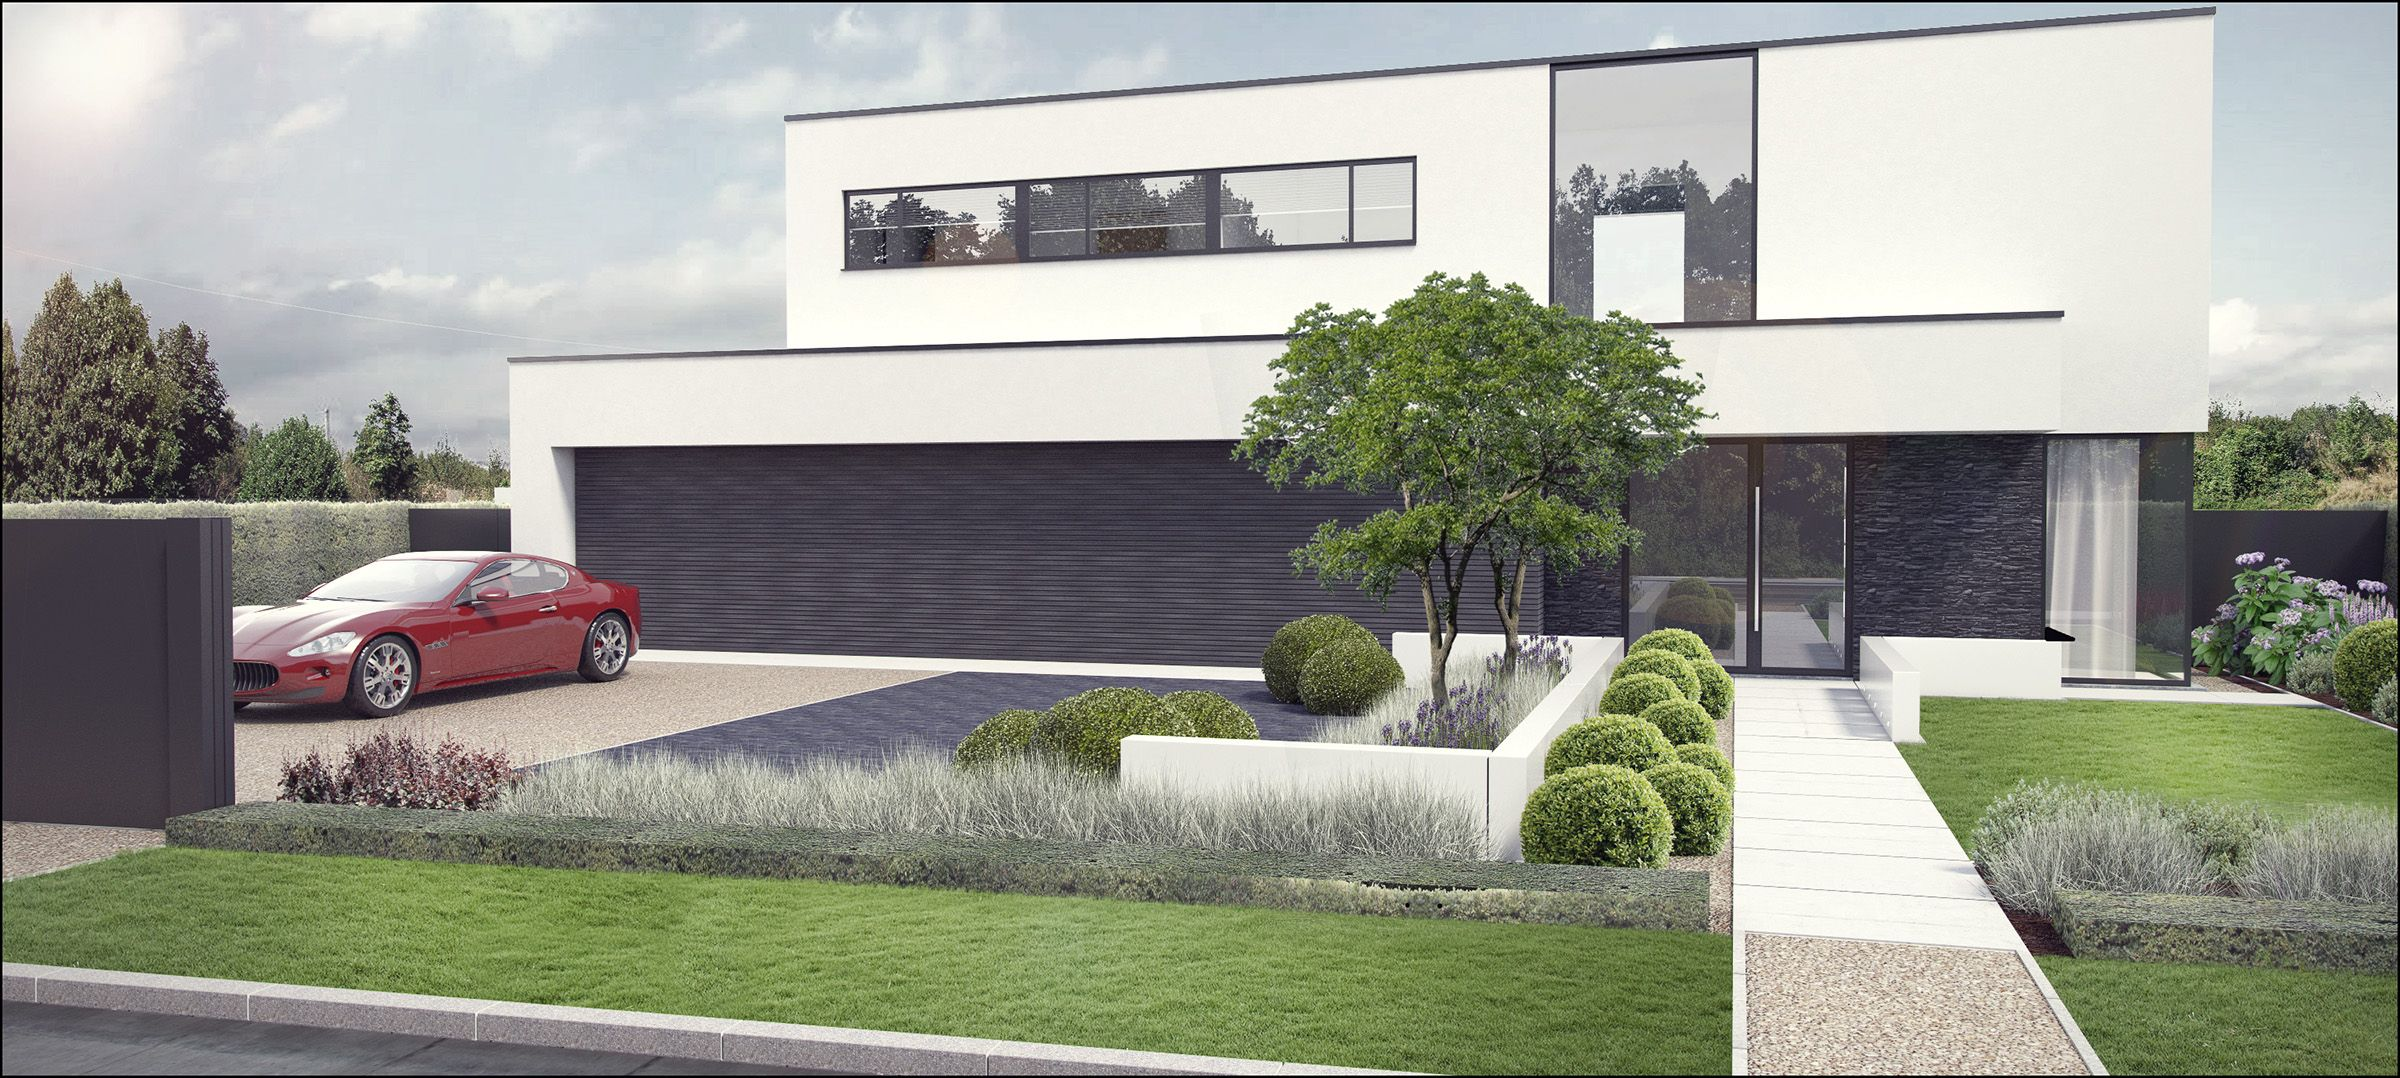 Eco tuinarchitectengroep 3d projecten tuin moderne woning tuin pinterest driveways for Tuin modern design